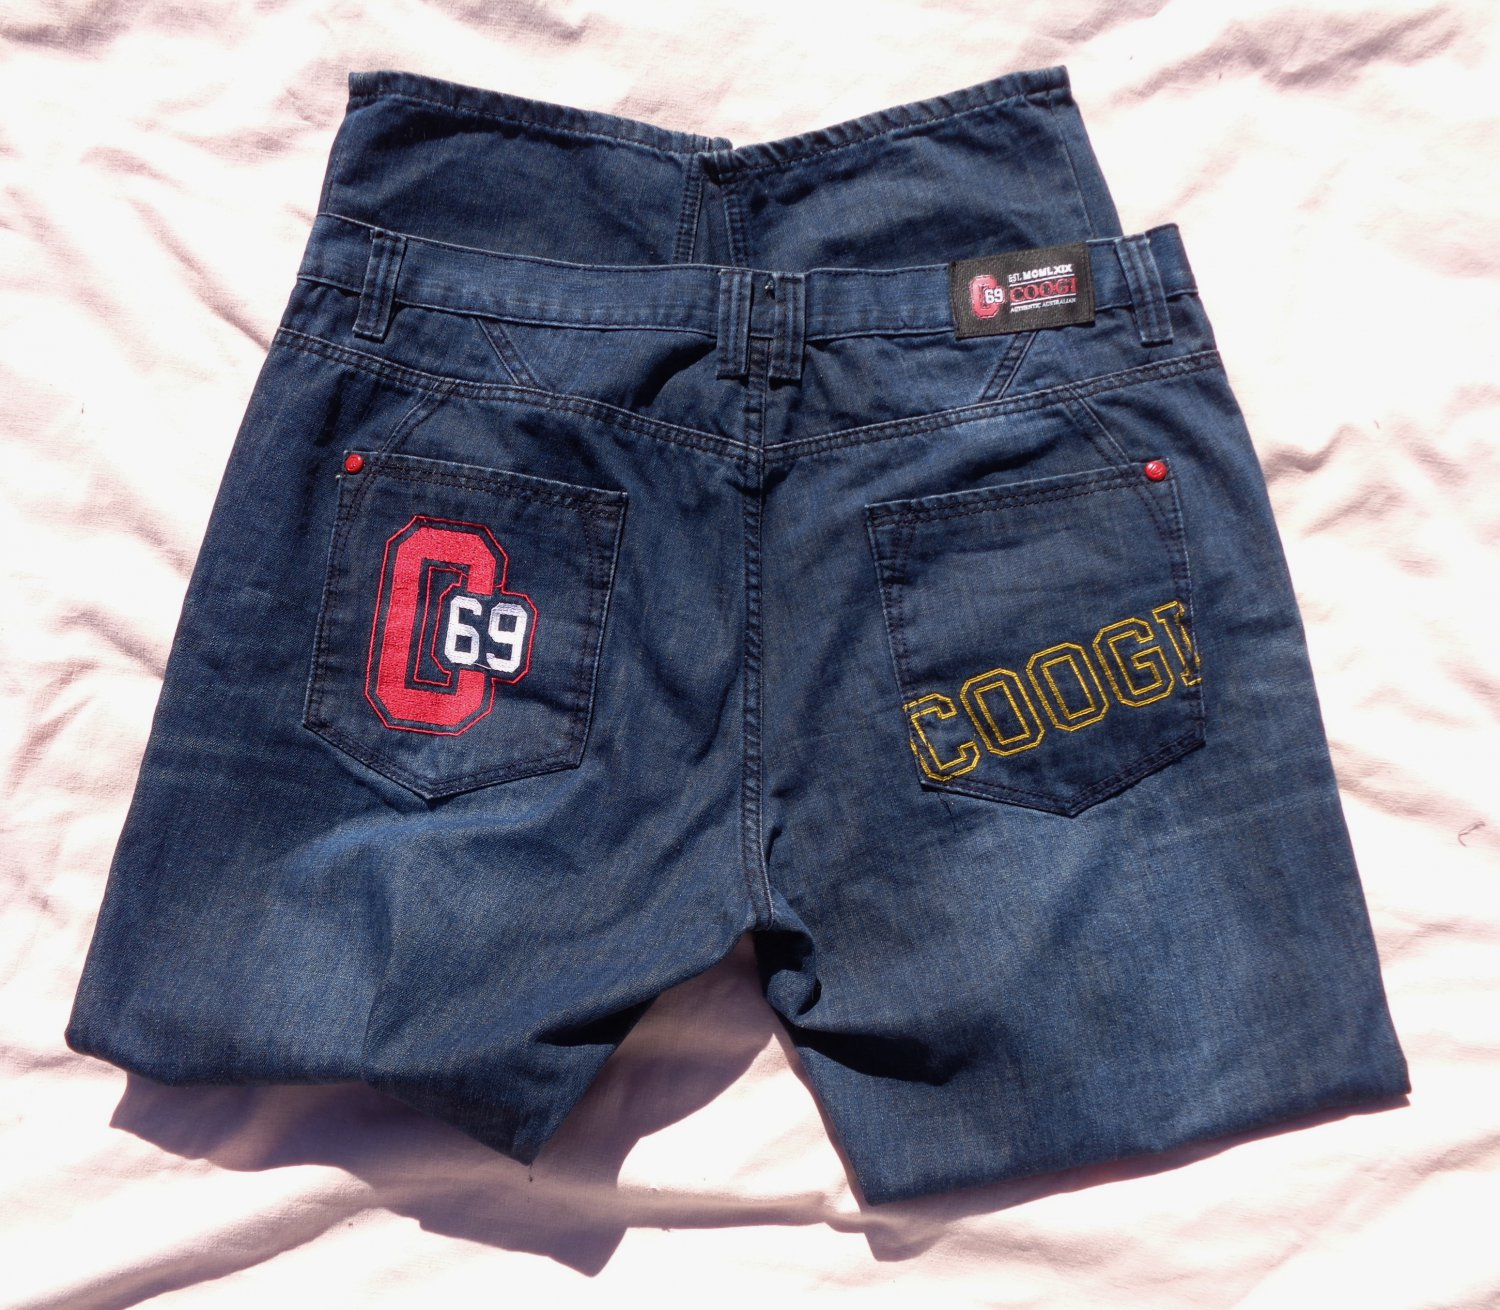 C69 Coogi Blue Jeans Mfg W42xL34 Act 44x34 Embroidered